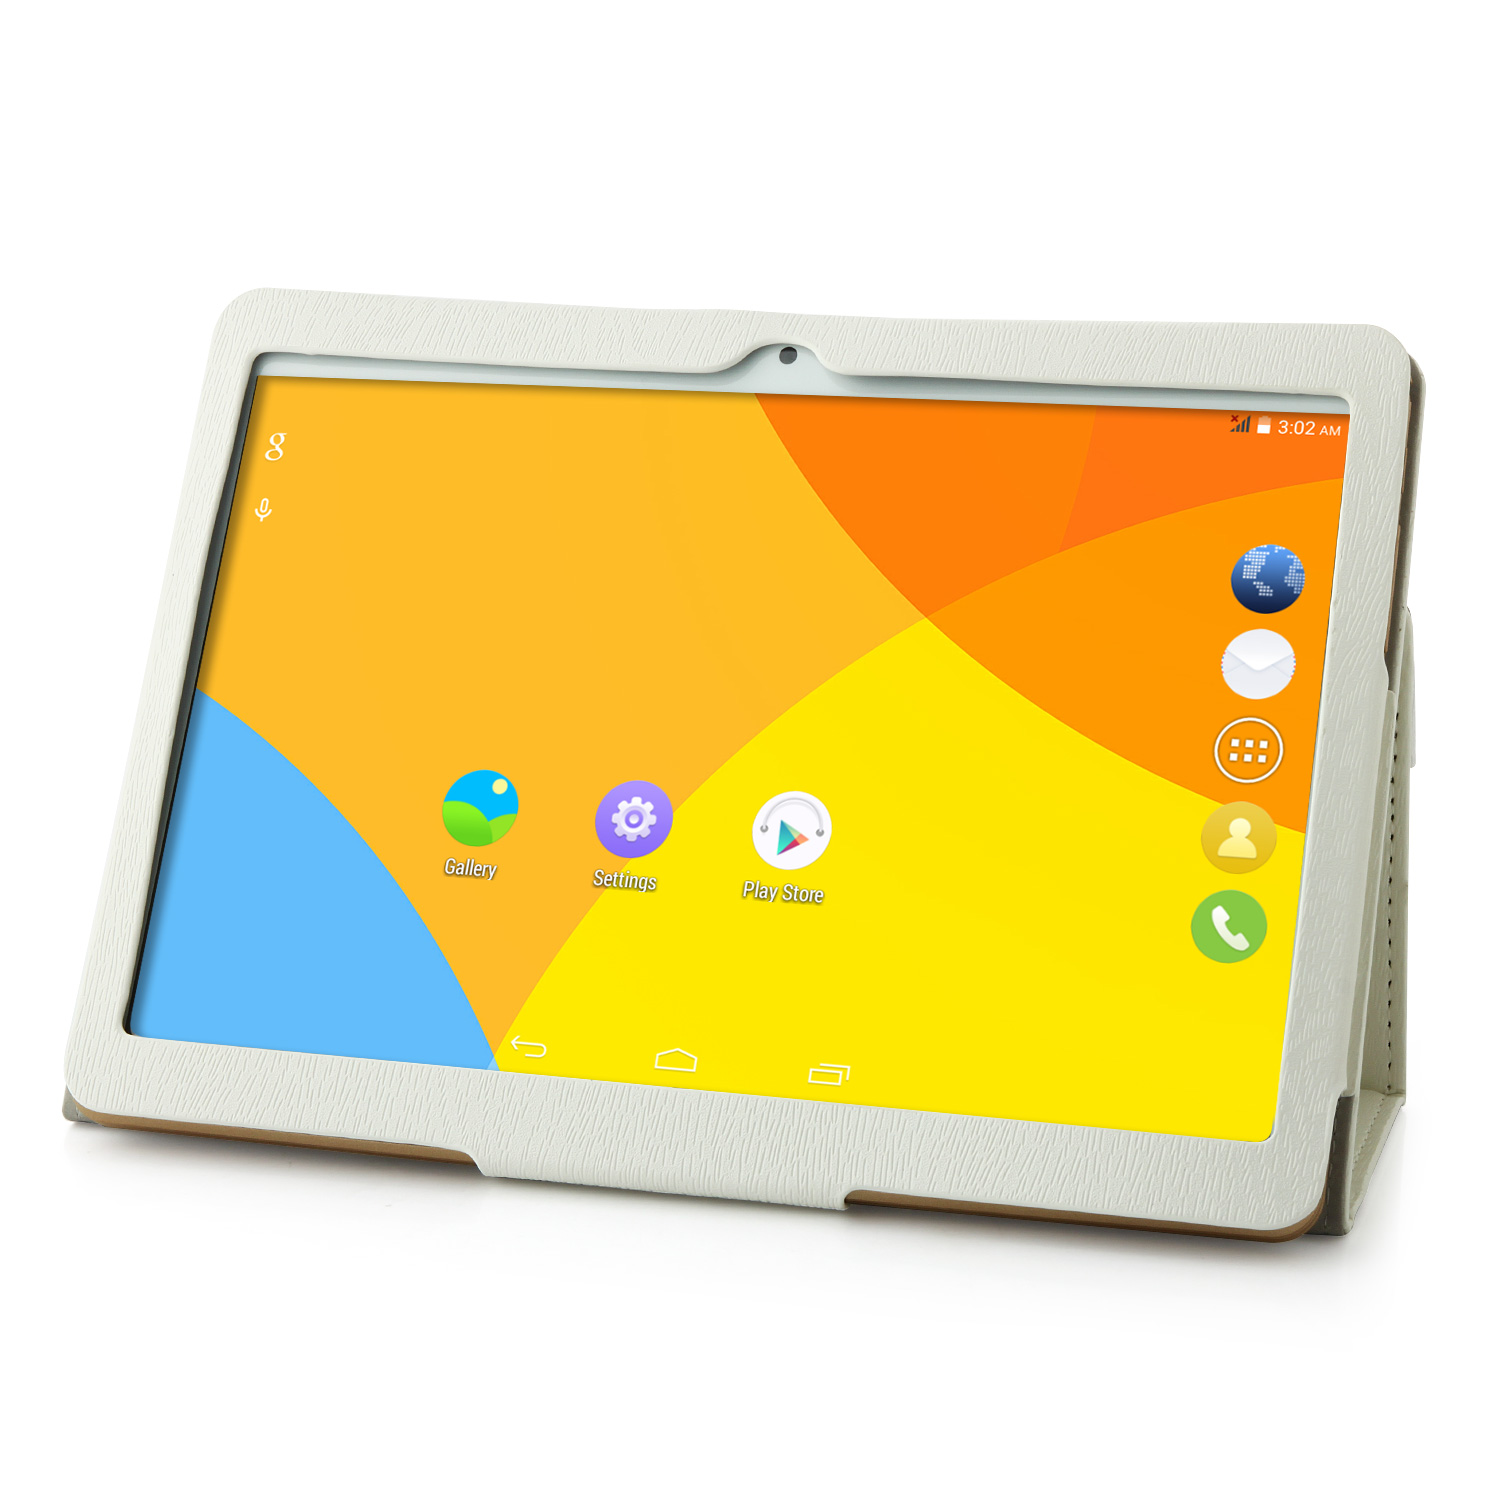 Original Flip Stand Leather Case Cover for VOYO Q901 Tablet PC White